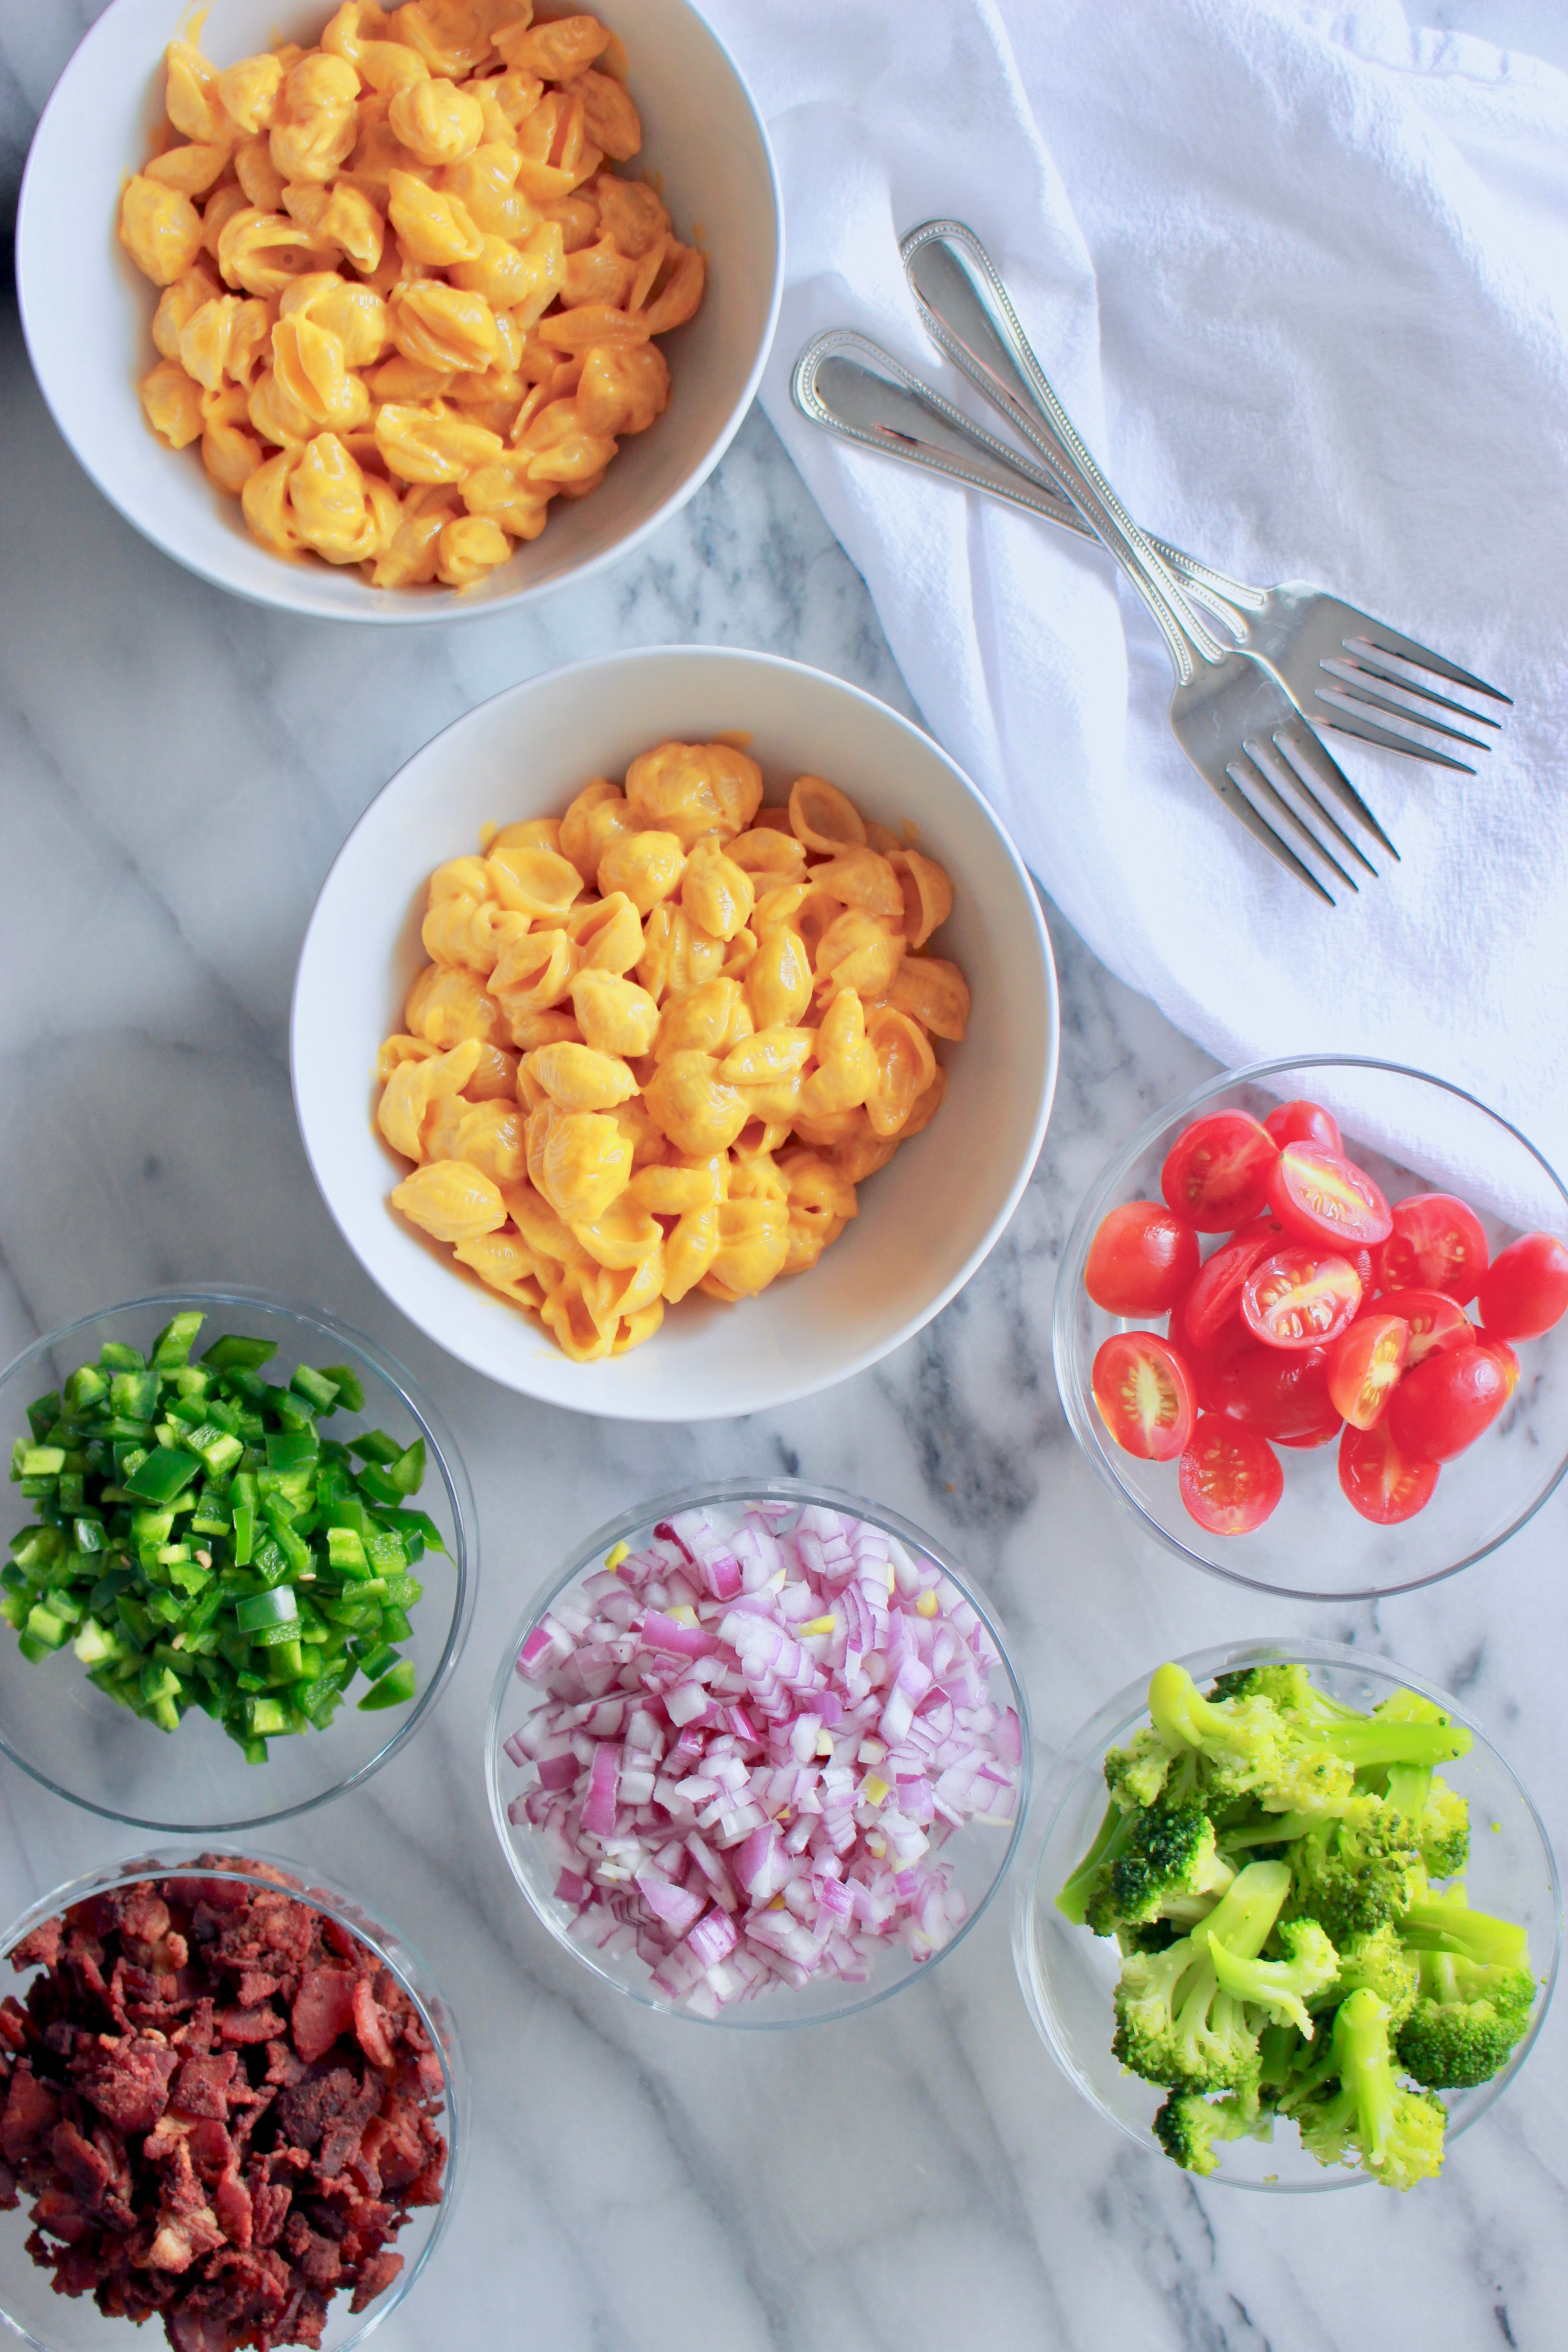 Topping Ideas for a Macaroni and Cheese Bar